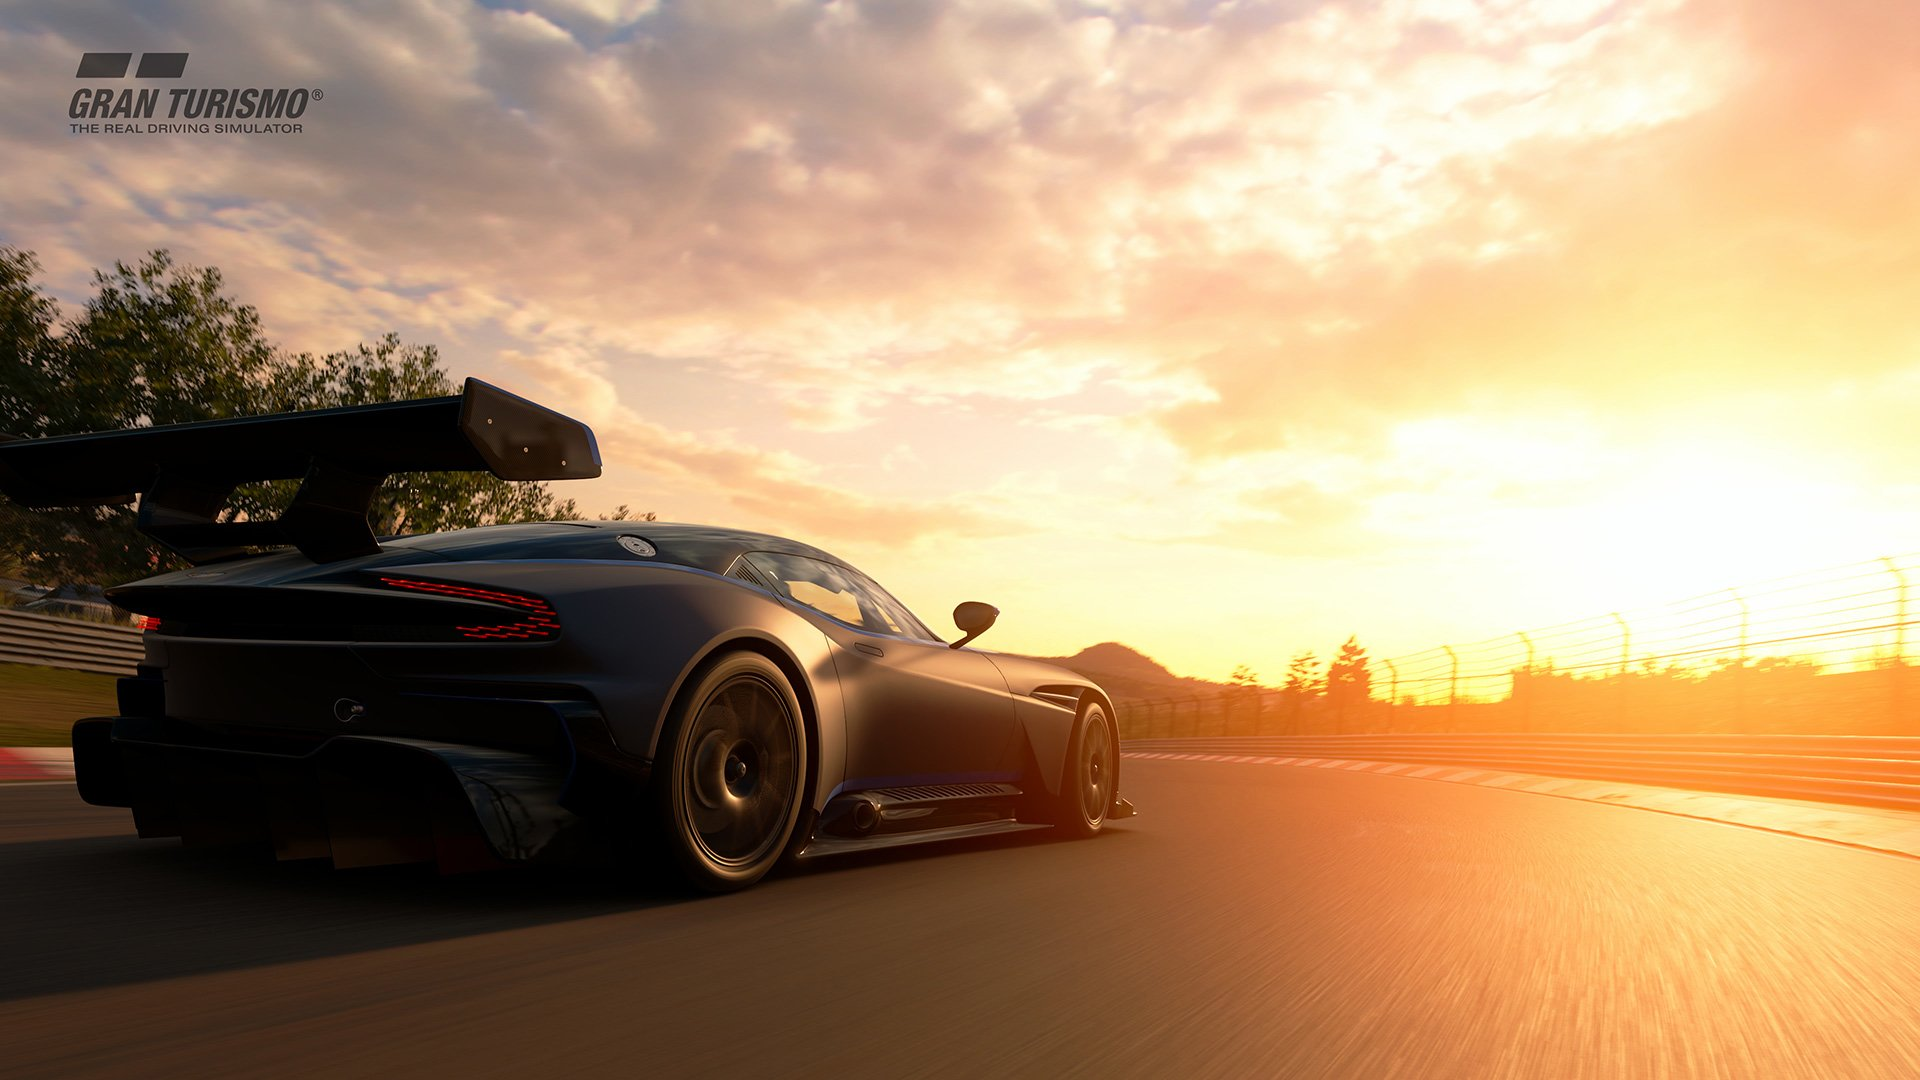 Video Game - Gran Turismo Sport  Aston Martin Vulcan Video Game Car Wallpaper